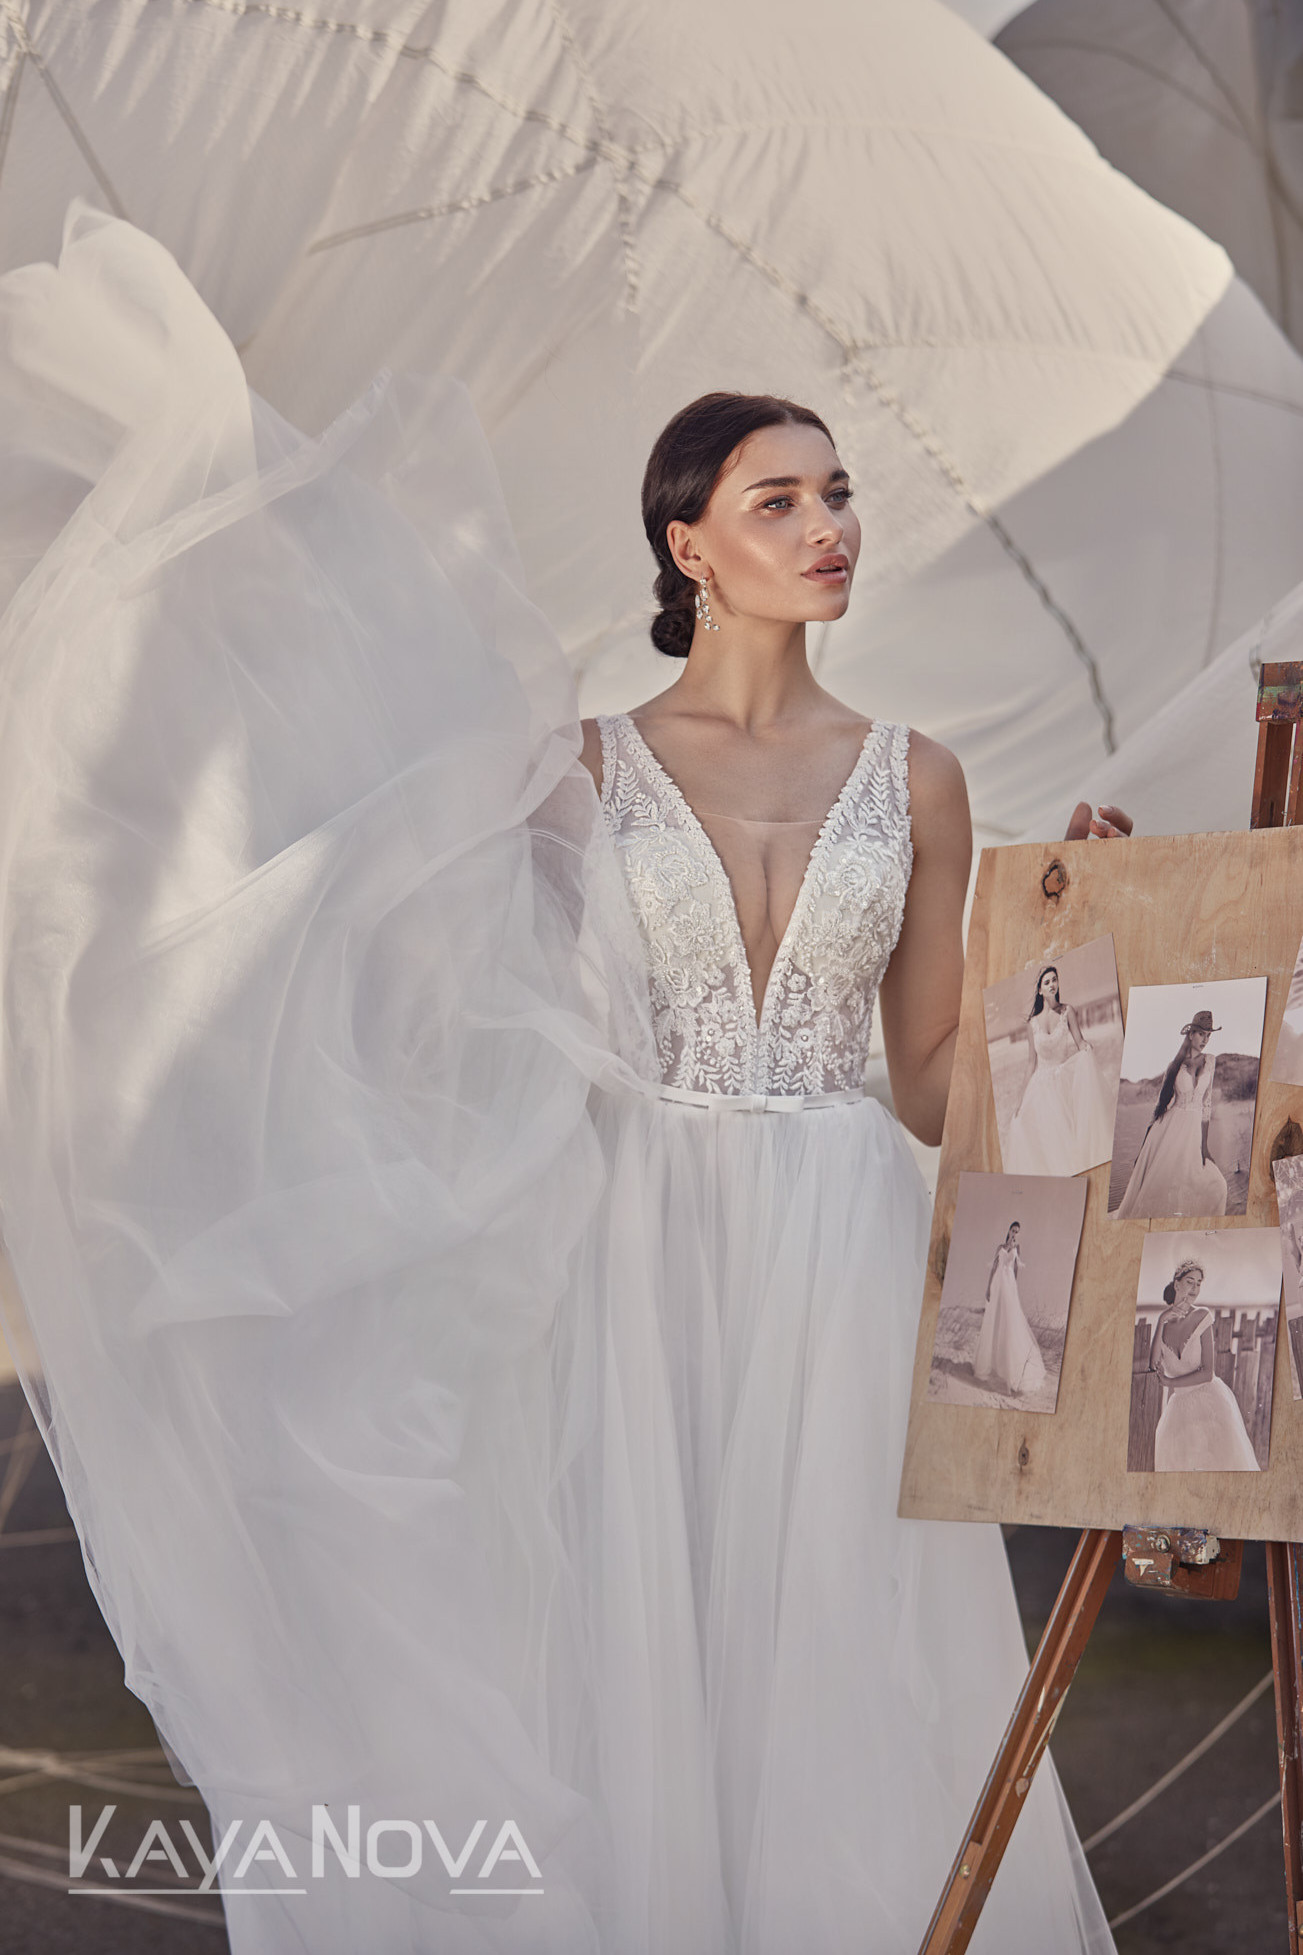 https://kayawedding.com/images/stories/virtuemart/product/Leona4.jpg